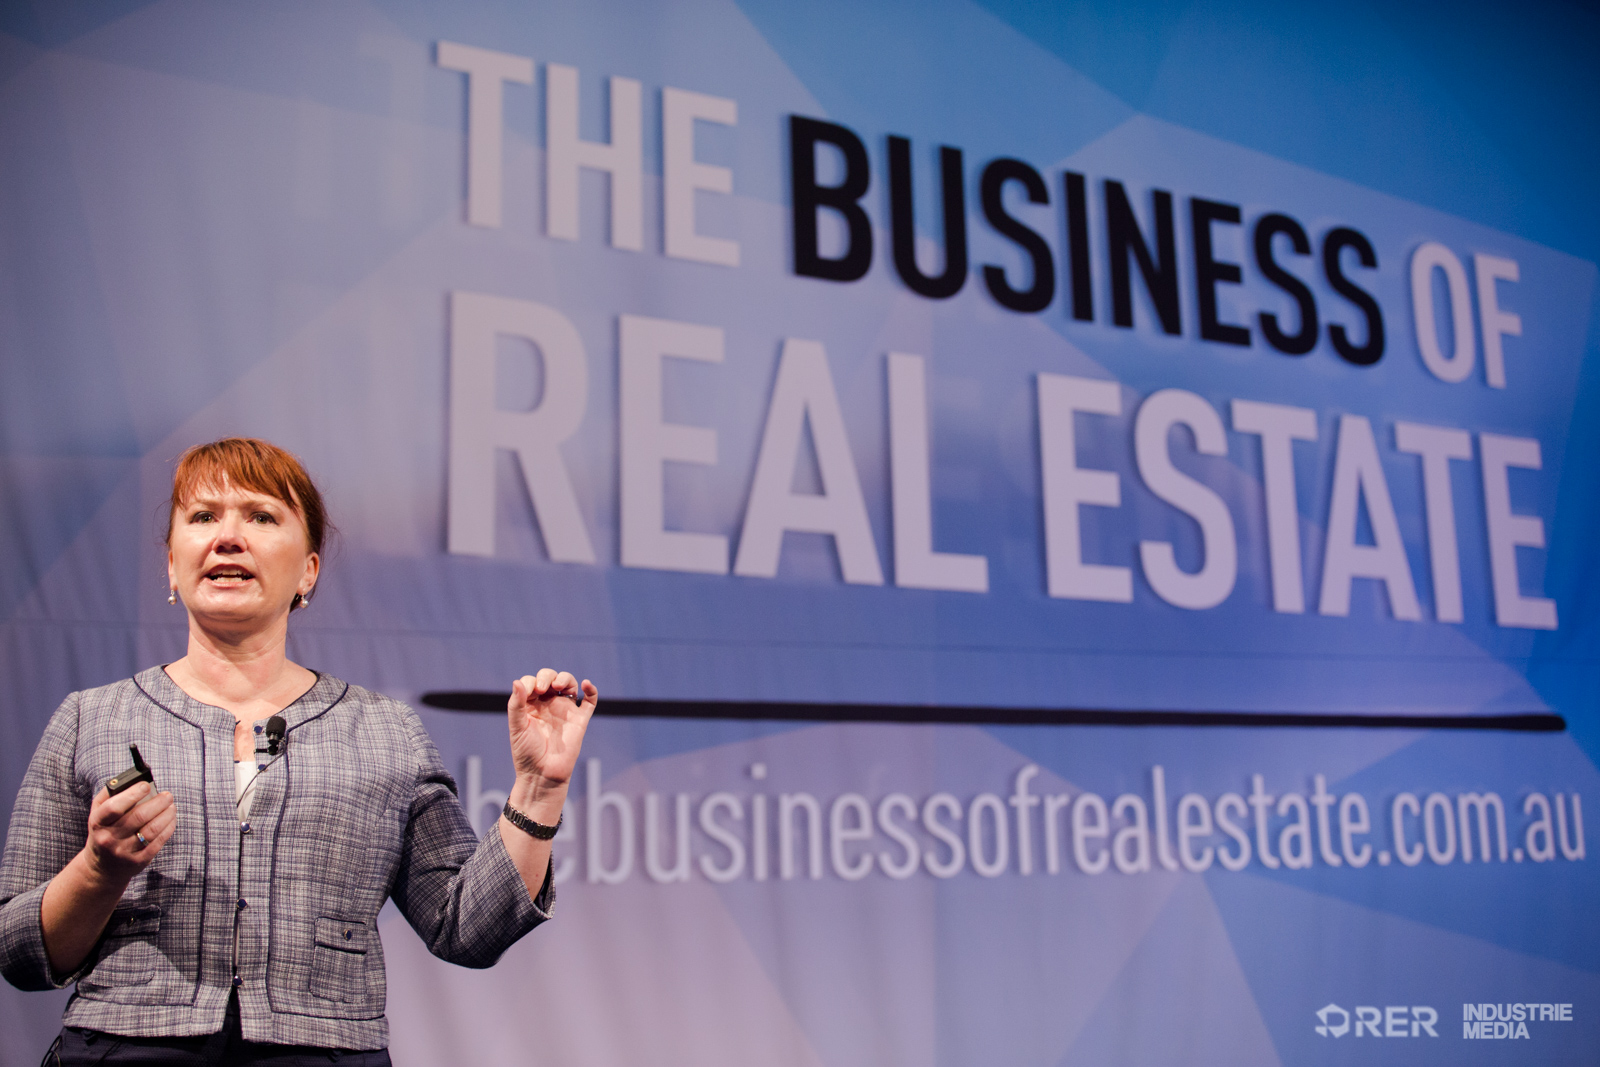 https://www.thebusinessofrealestate.com.au/wp-content/uploads/2016/09/RER_BUSINESS_OF_REAL_ESTATE_DAY_2-70.jpg